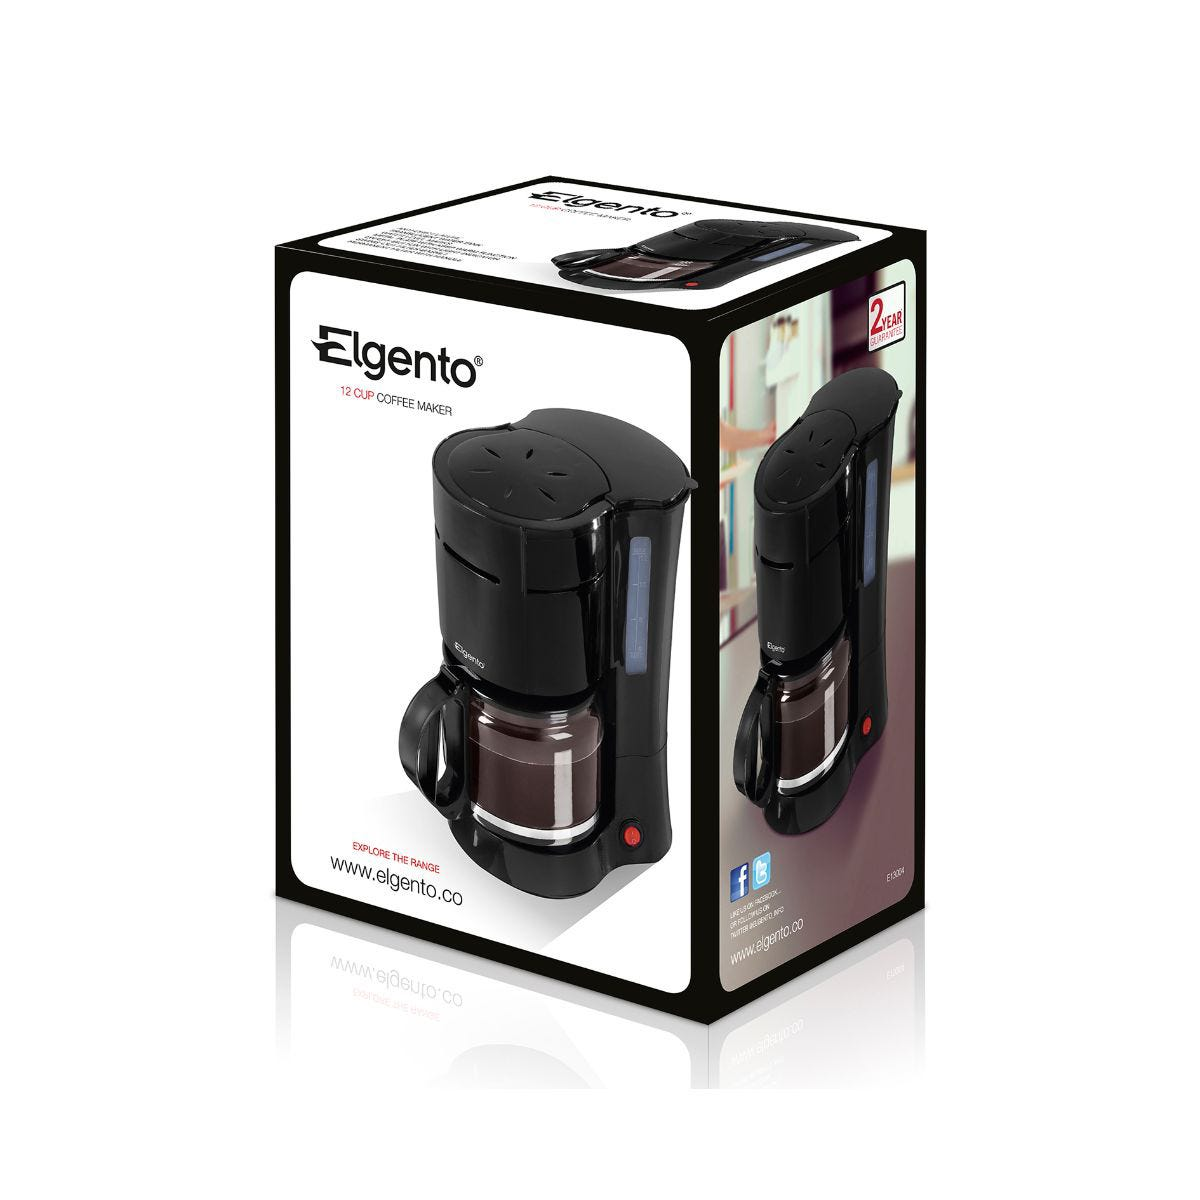 Image of Elgento 12 Cup Coffee Maker